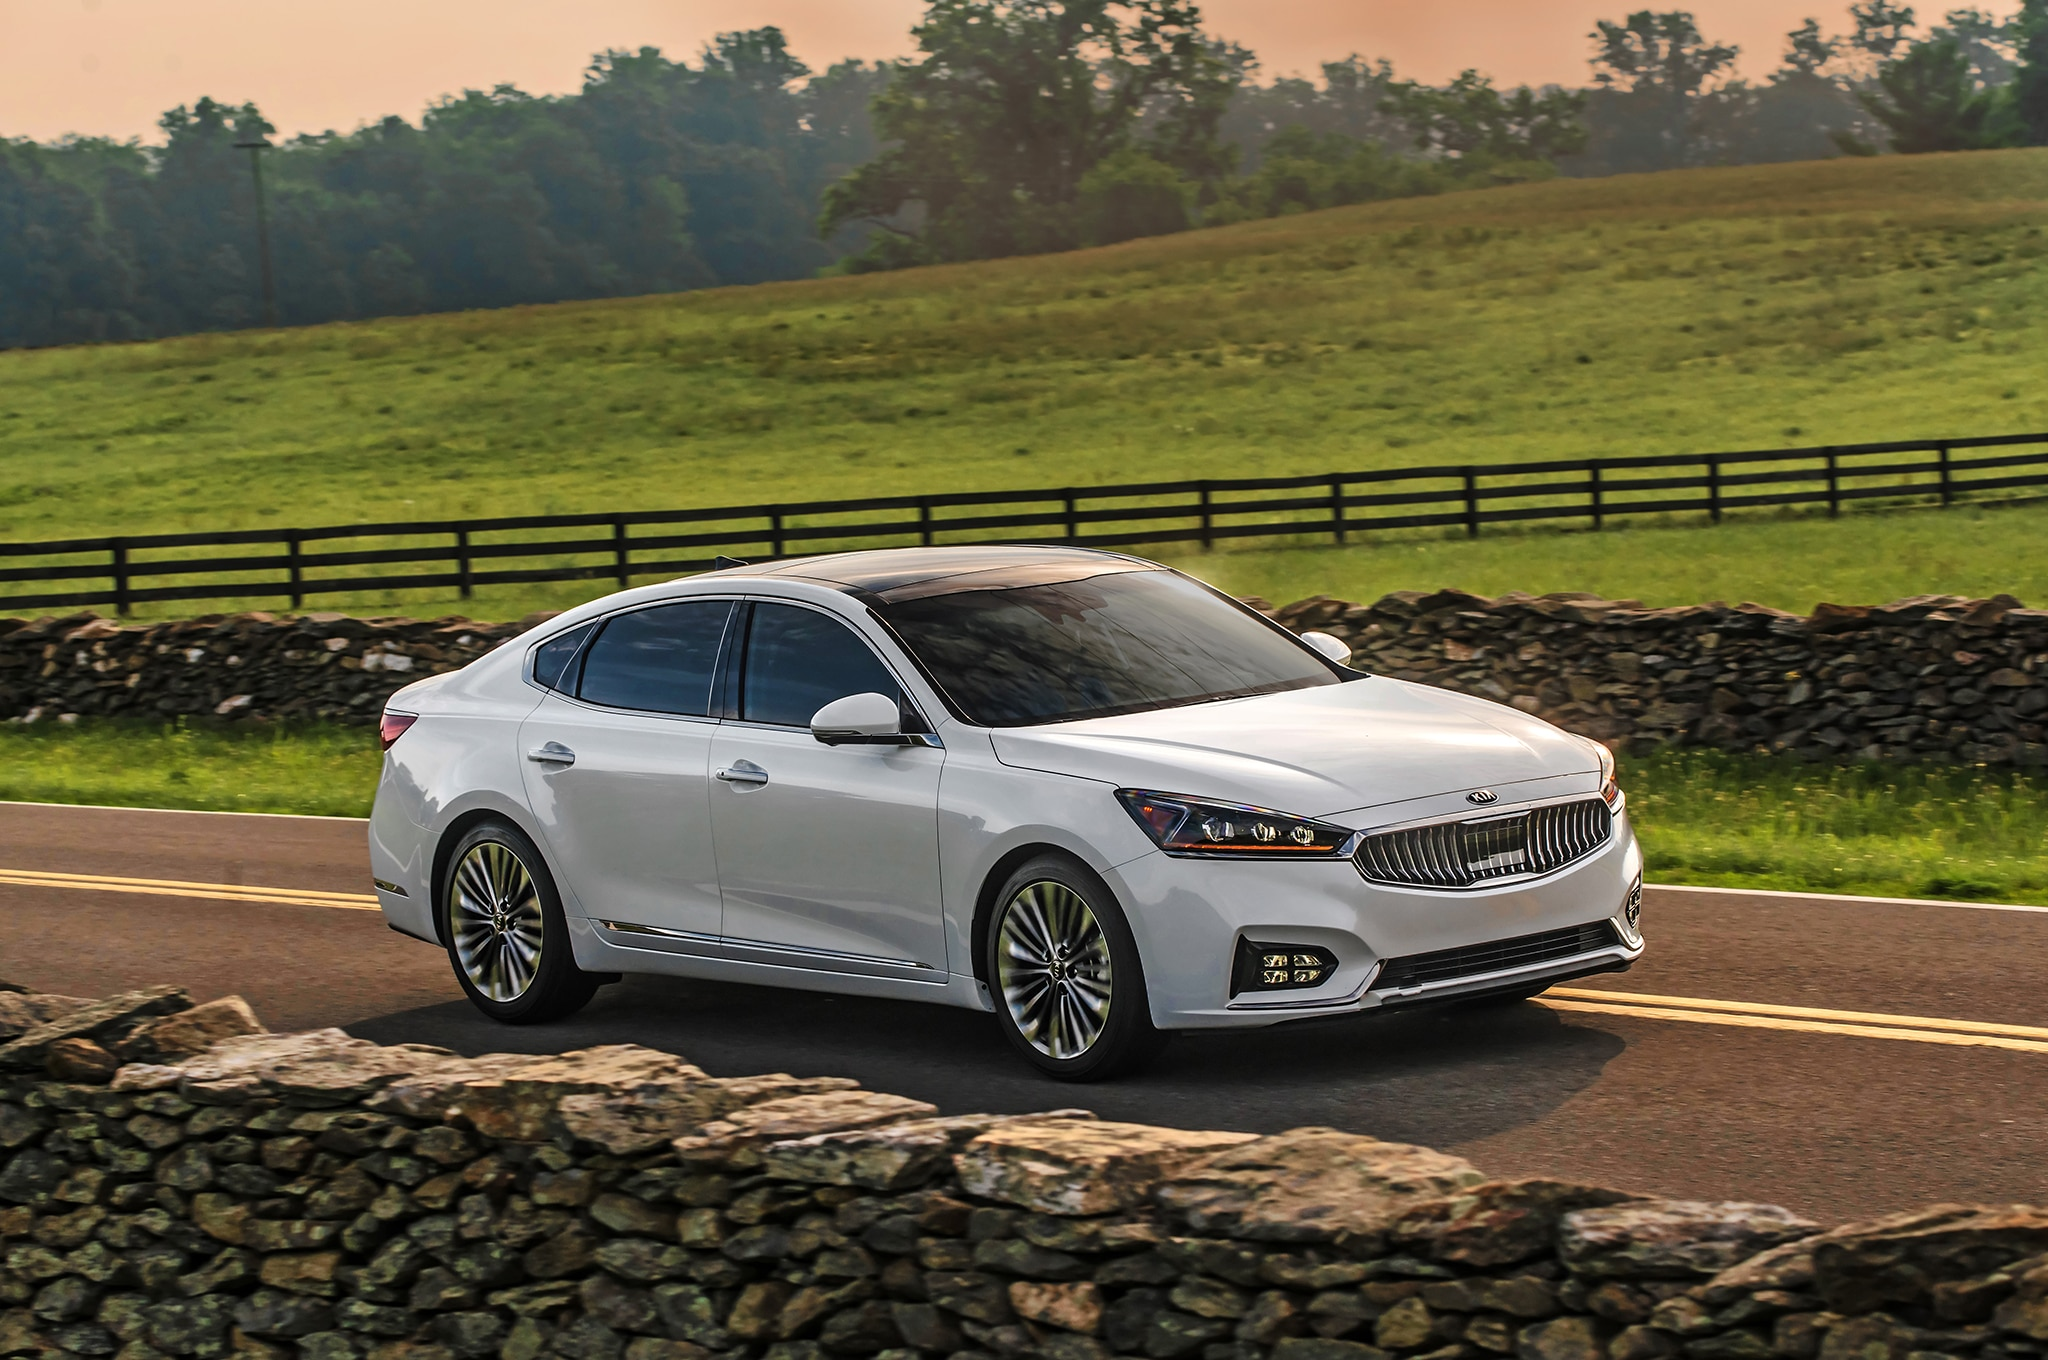 2017 Kia Cadenza SXL Front Three Quarter 07